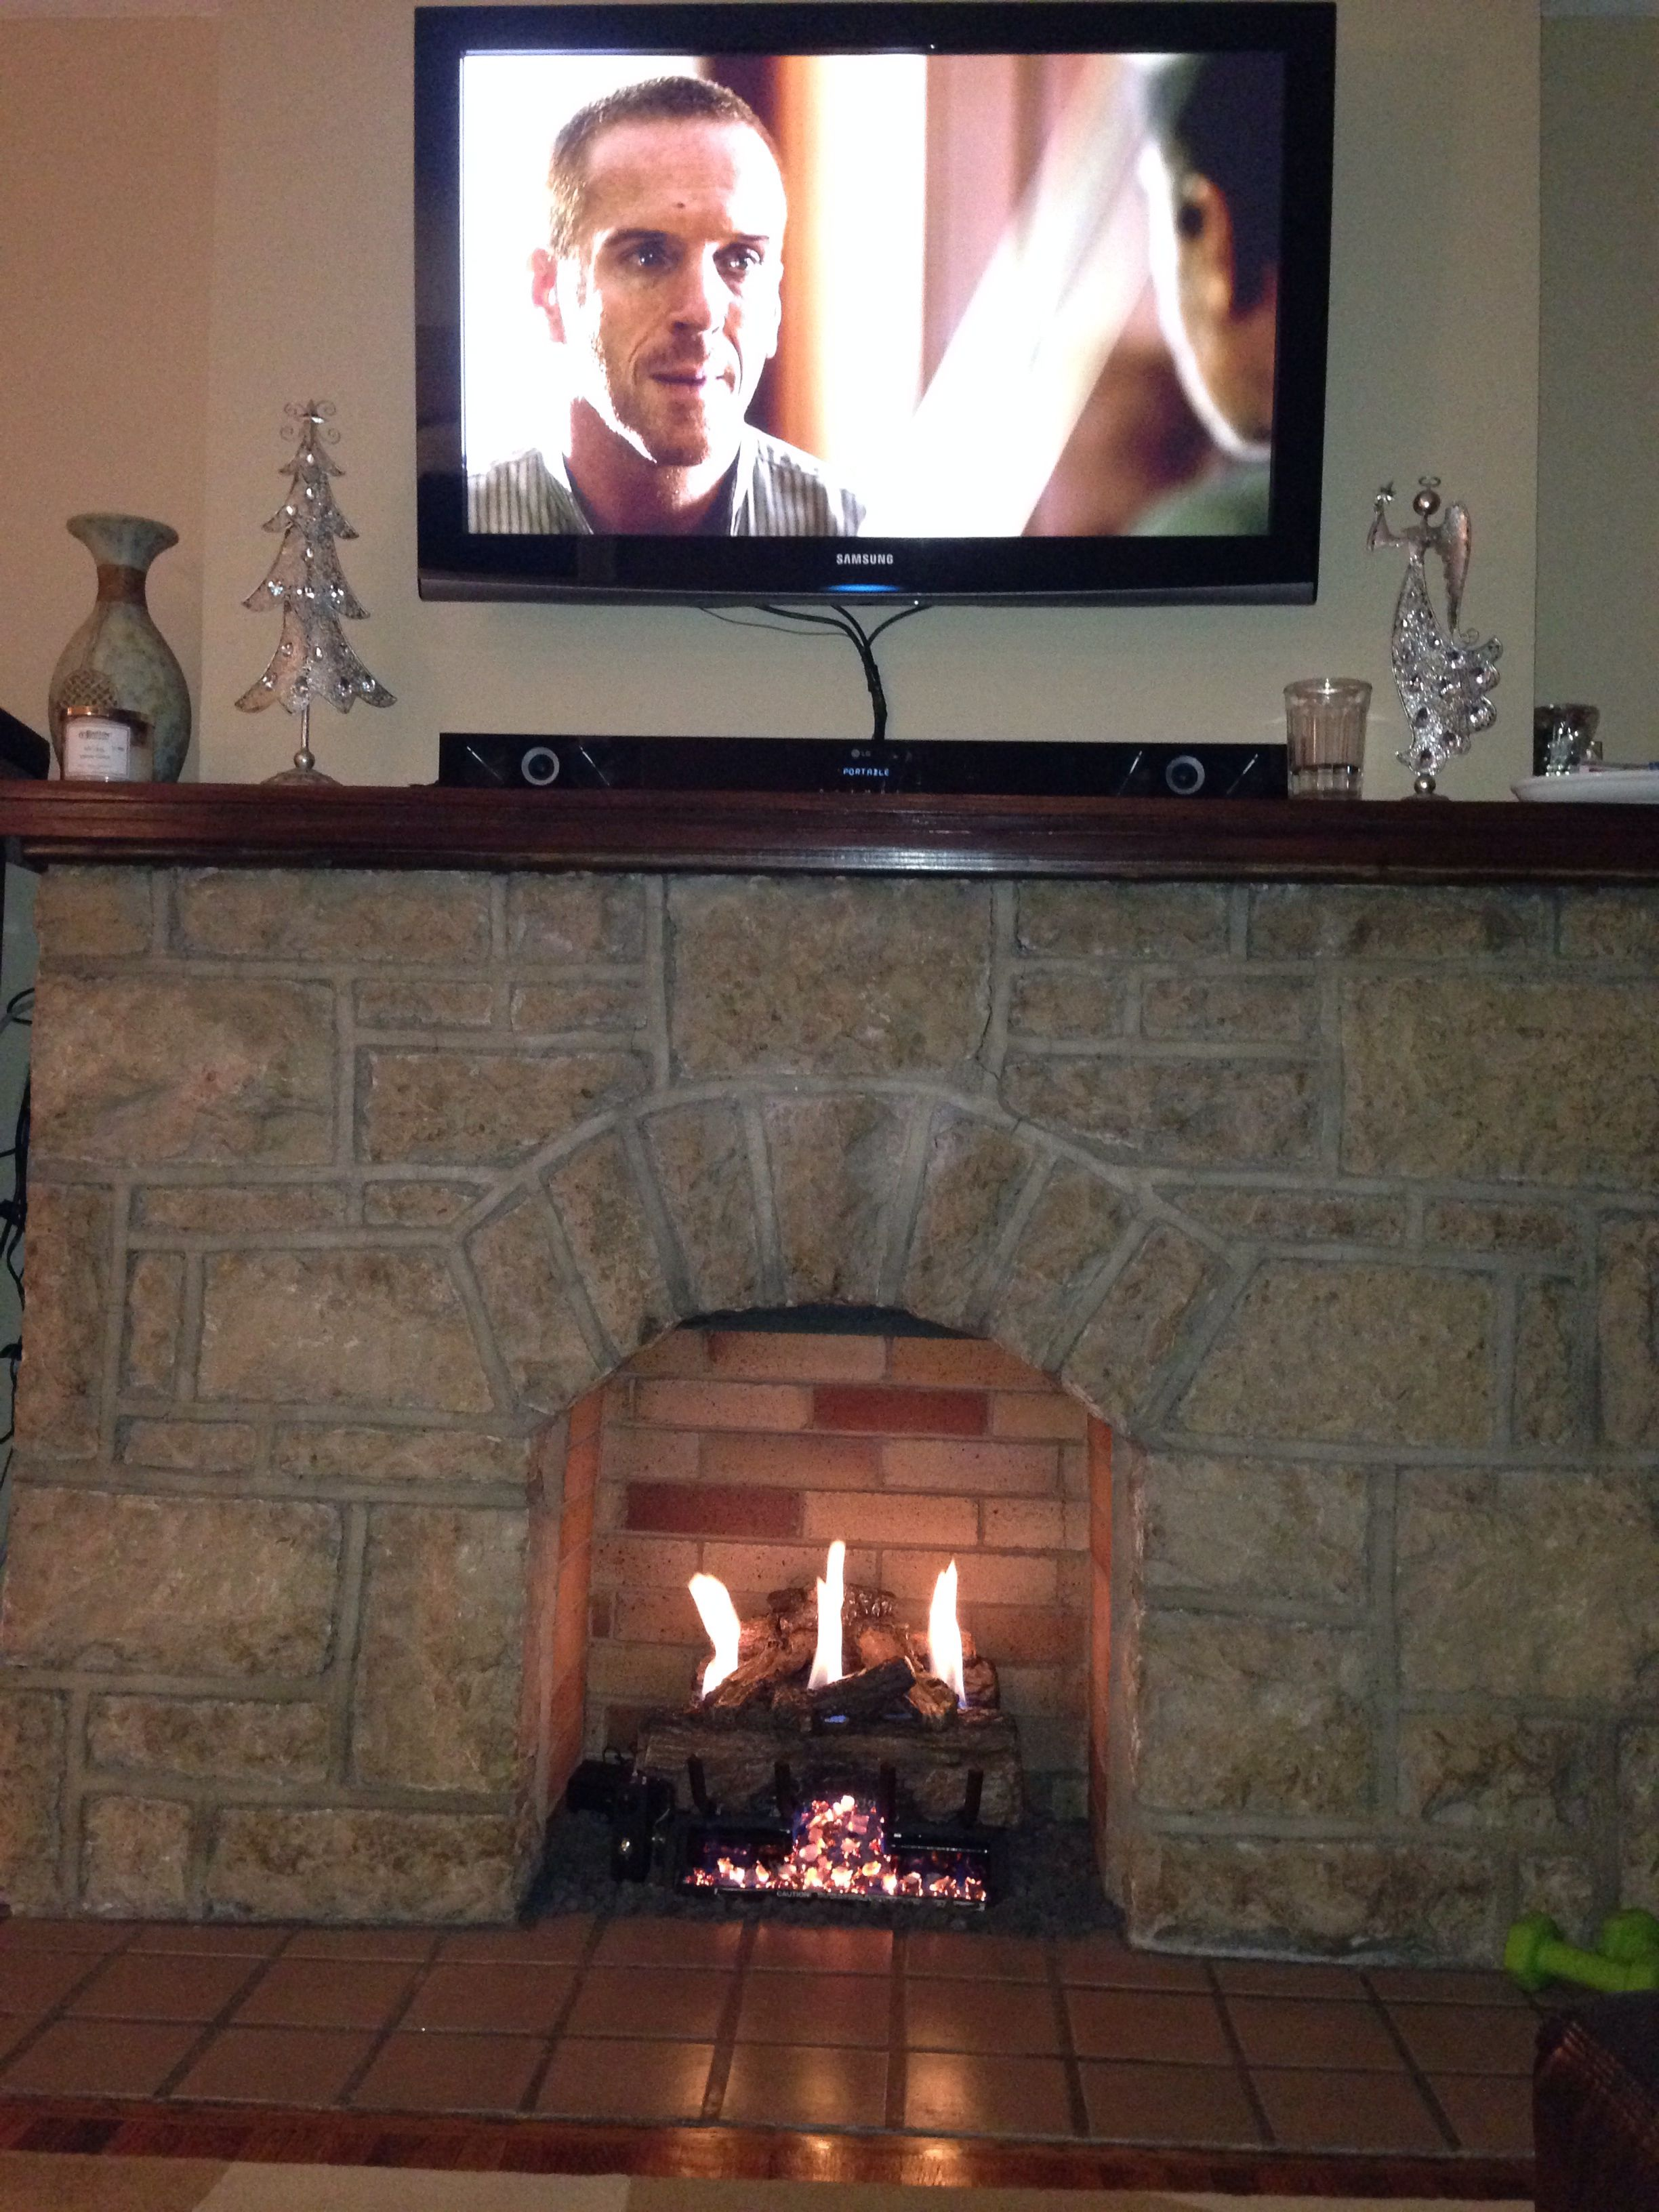 Perfection Ventless Gas Log Fireplace With Television Mounted Above Oh And Homeland On Demand Gas Fireplace Logs Basement Fireplace Fireplace